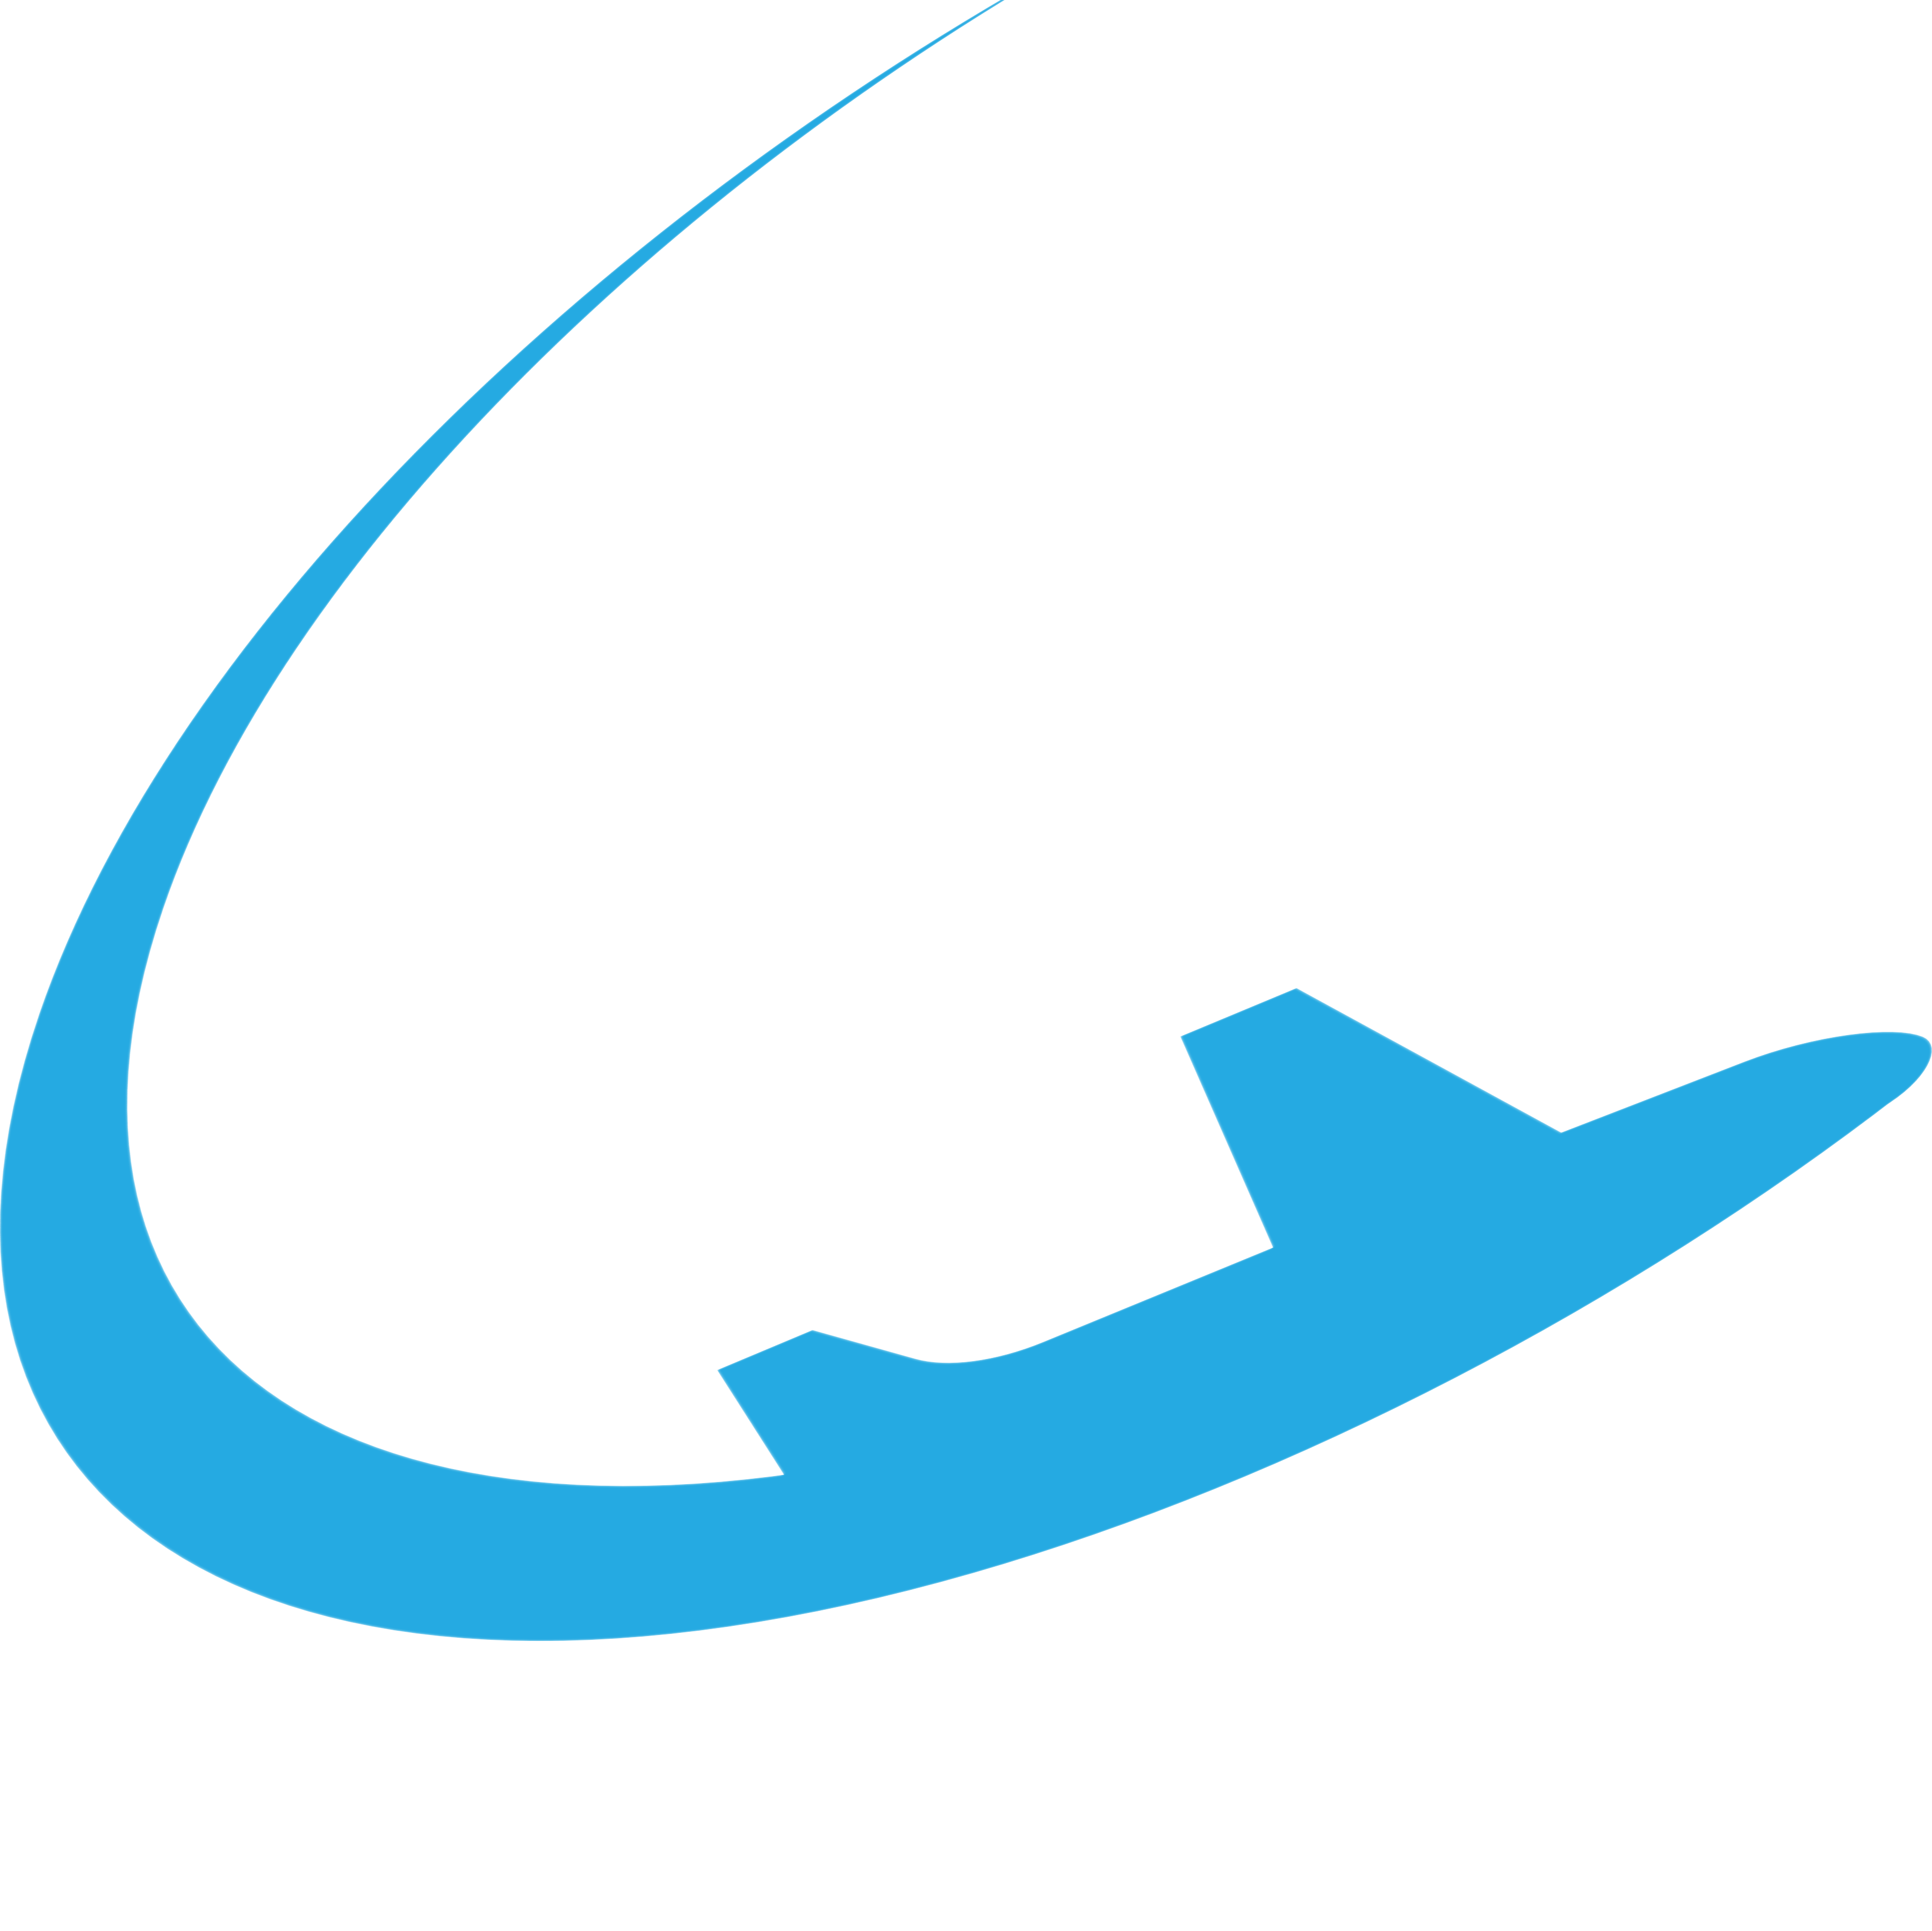 Airplane vector png. File wv logo proposal